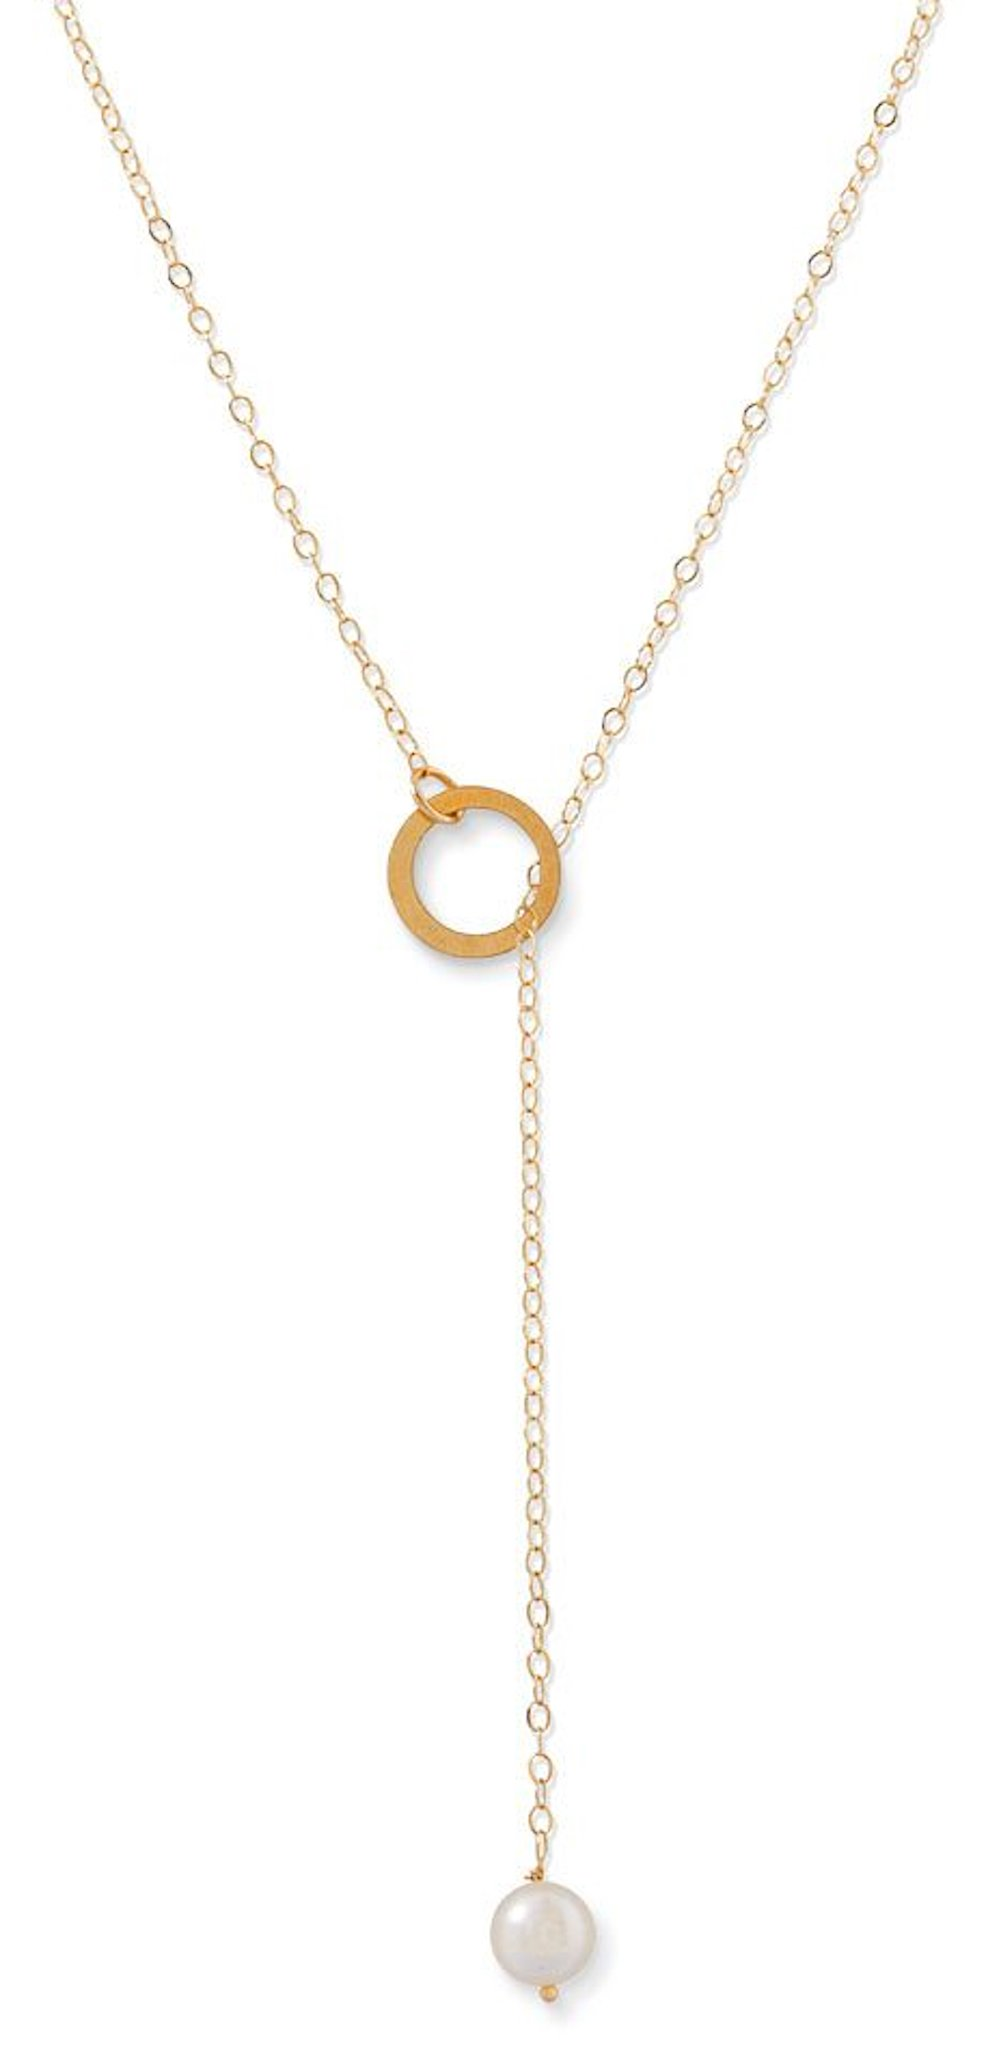 14K Gold Lariat Chain Necklace, 6mm Near Round Bleached White Cultured Freshwater Pearl End, 18 inches